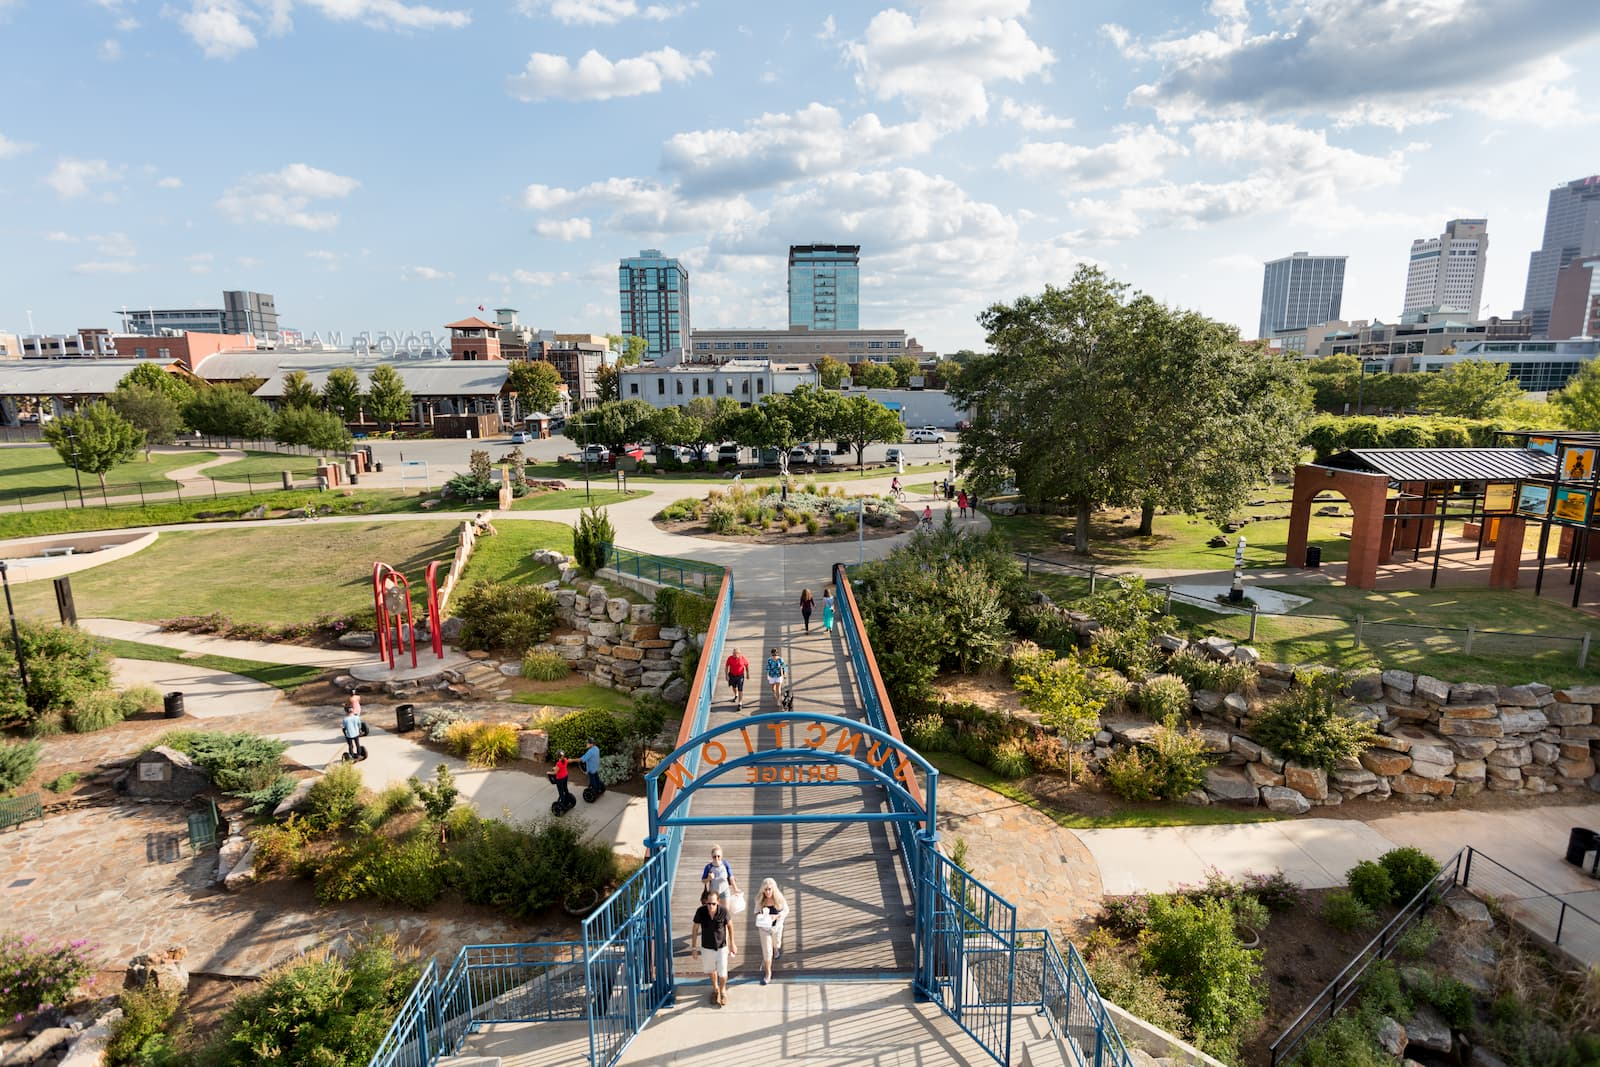 Little Rock Riverfront Park